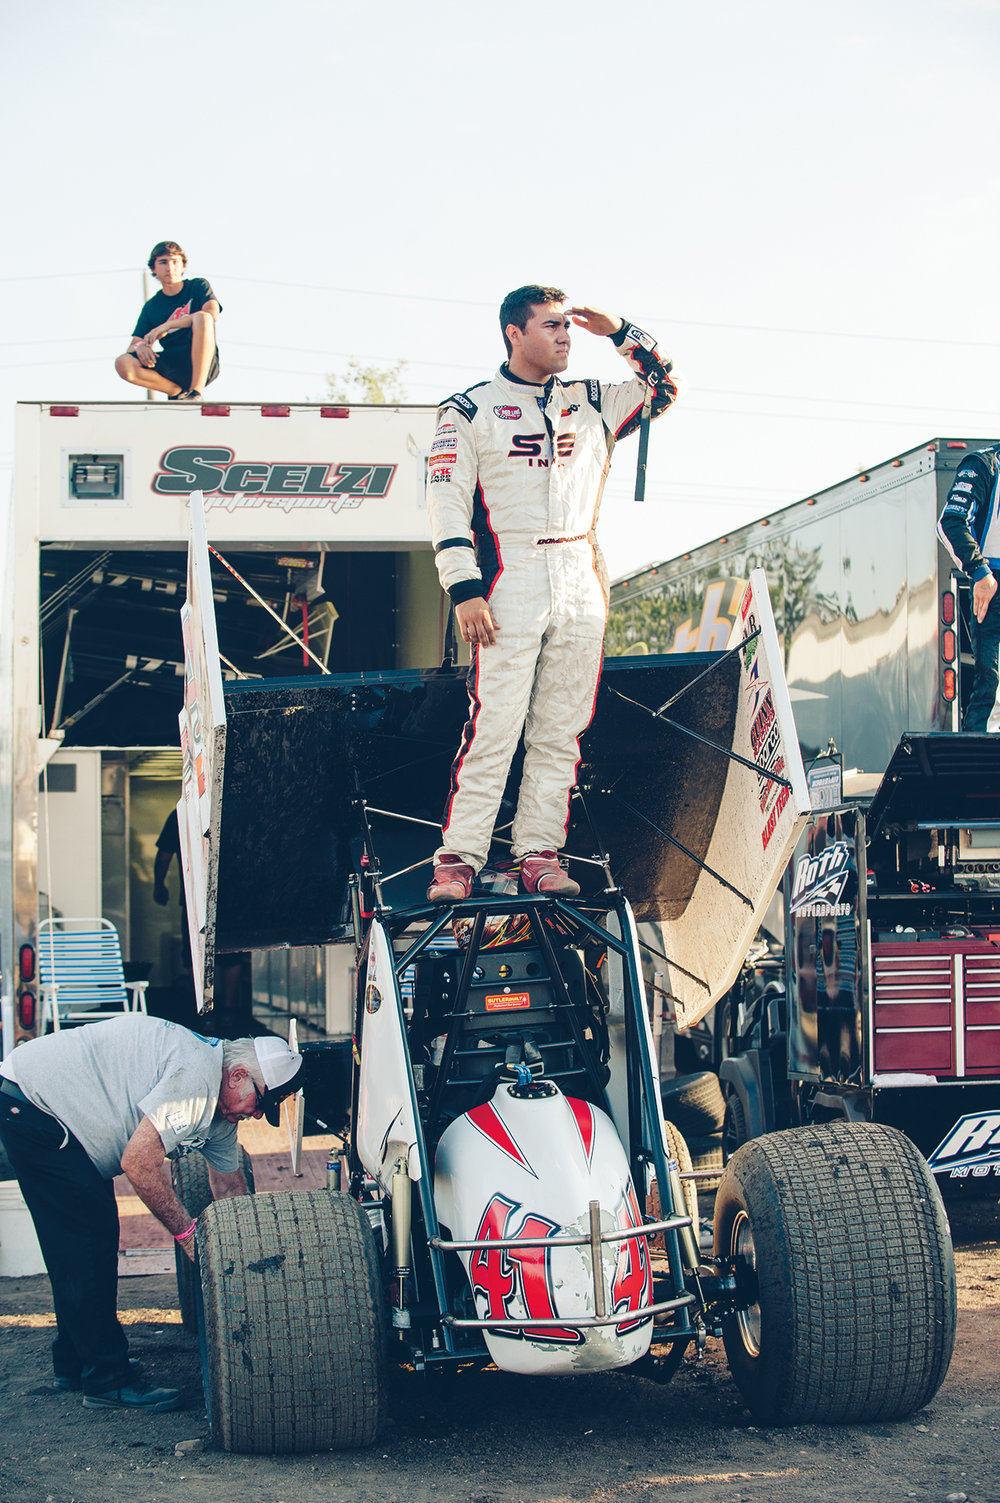 Dominic and Giovanni (on trailer) keep an eye on sprint car hot laps from the pits at Silver Dollar Speedway, 2014.